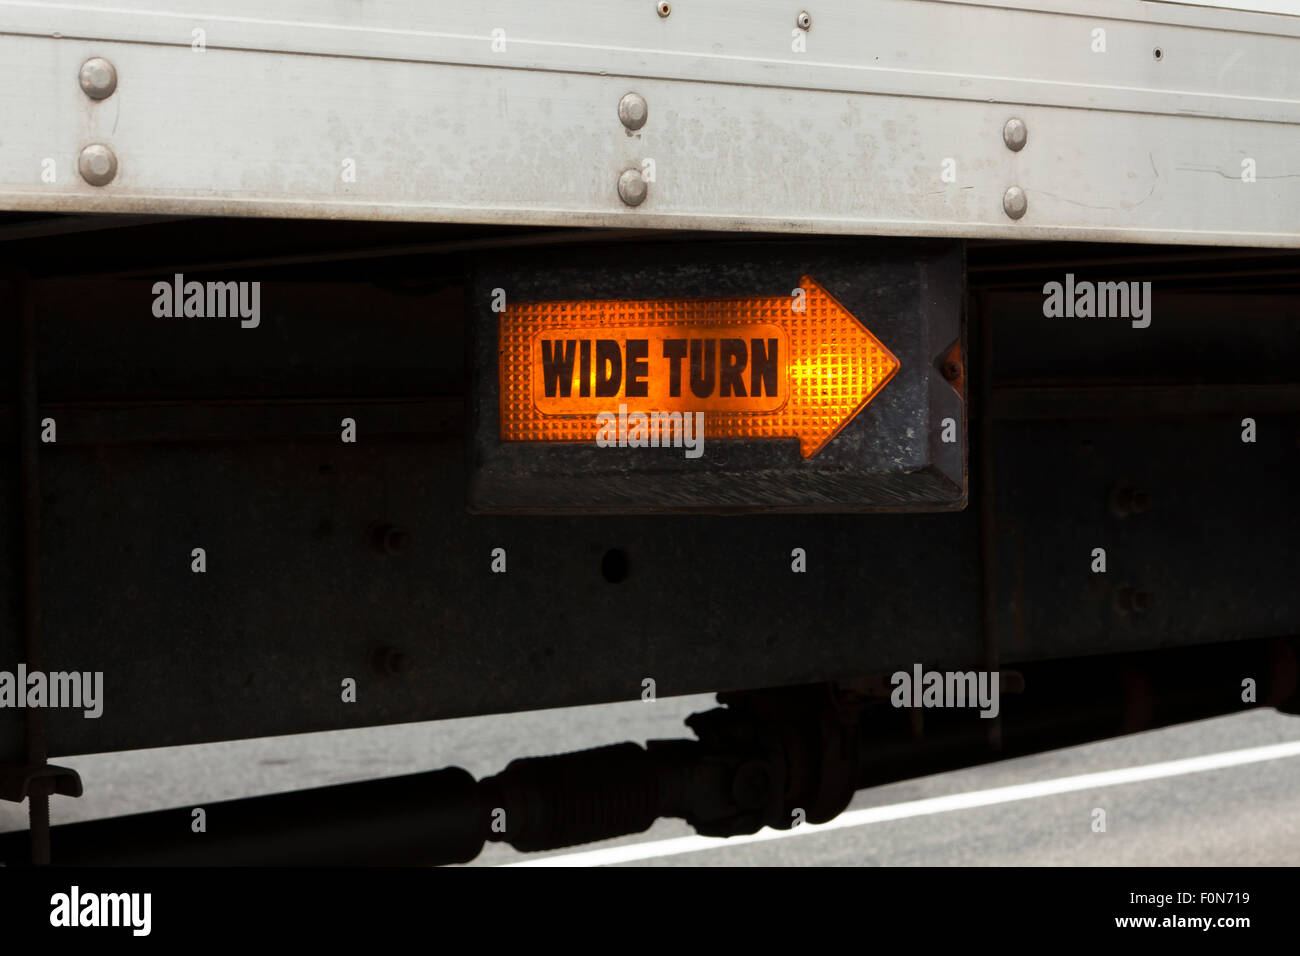 Wide Turn signal light on truck - USA - Stock Image